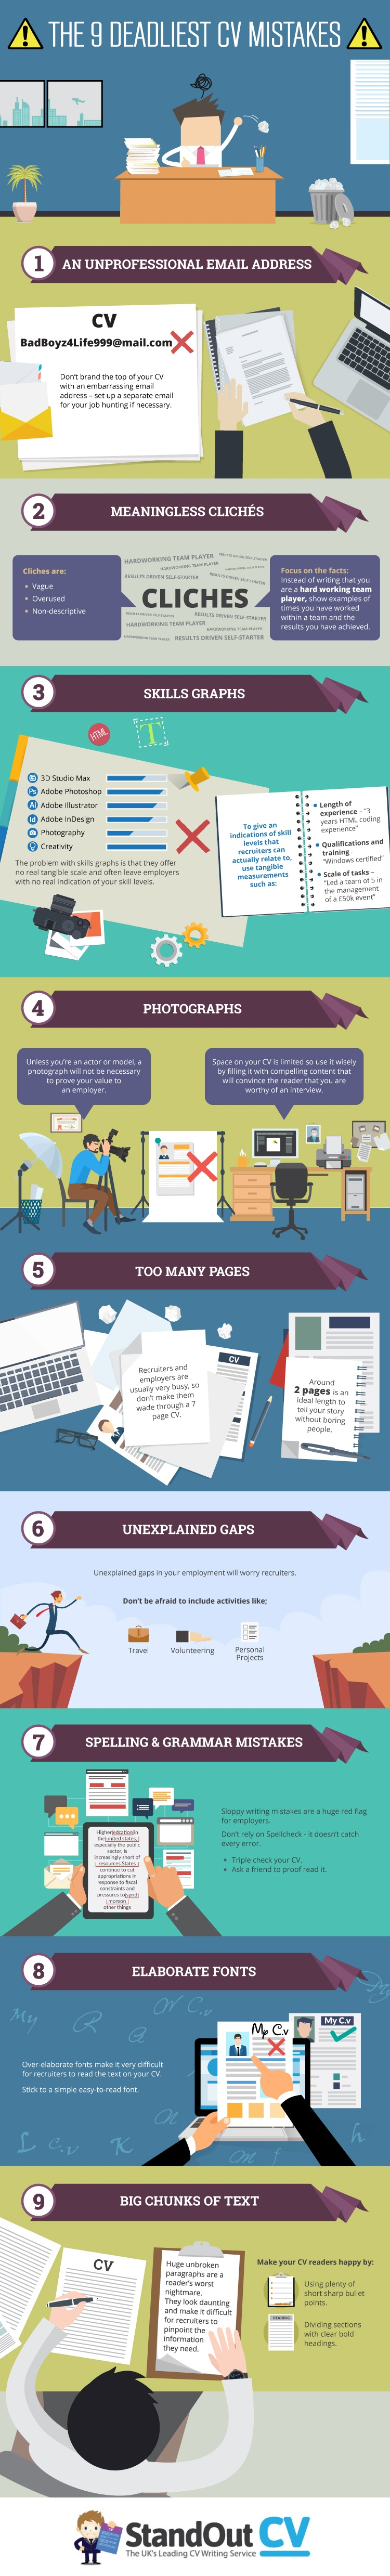 Infographic on resume advice for avoiding common CV mistakes